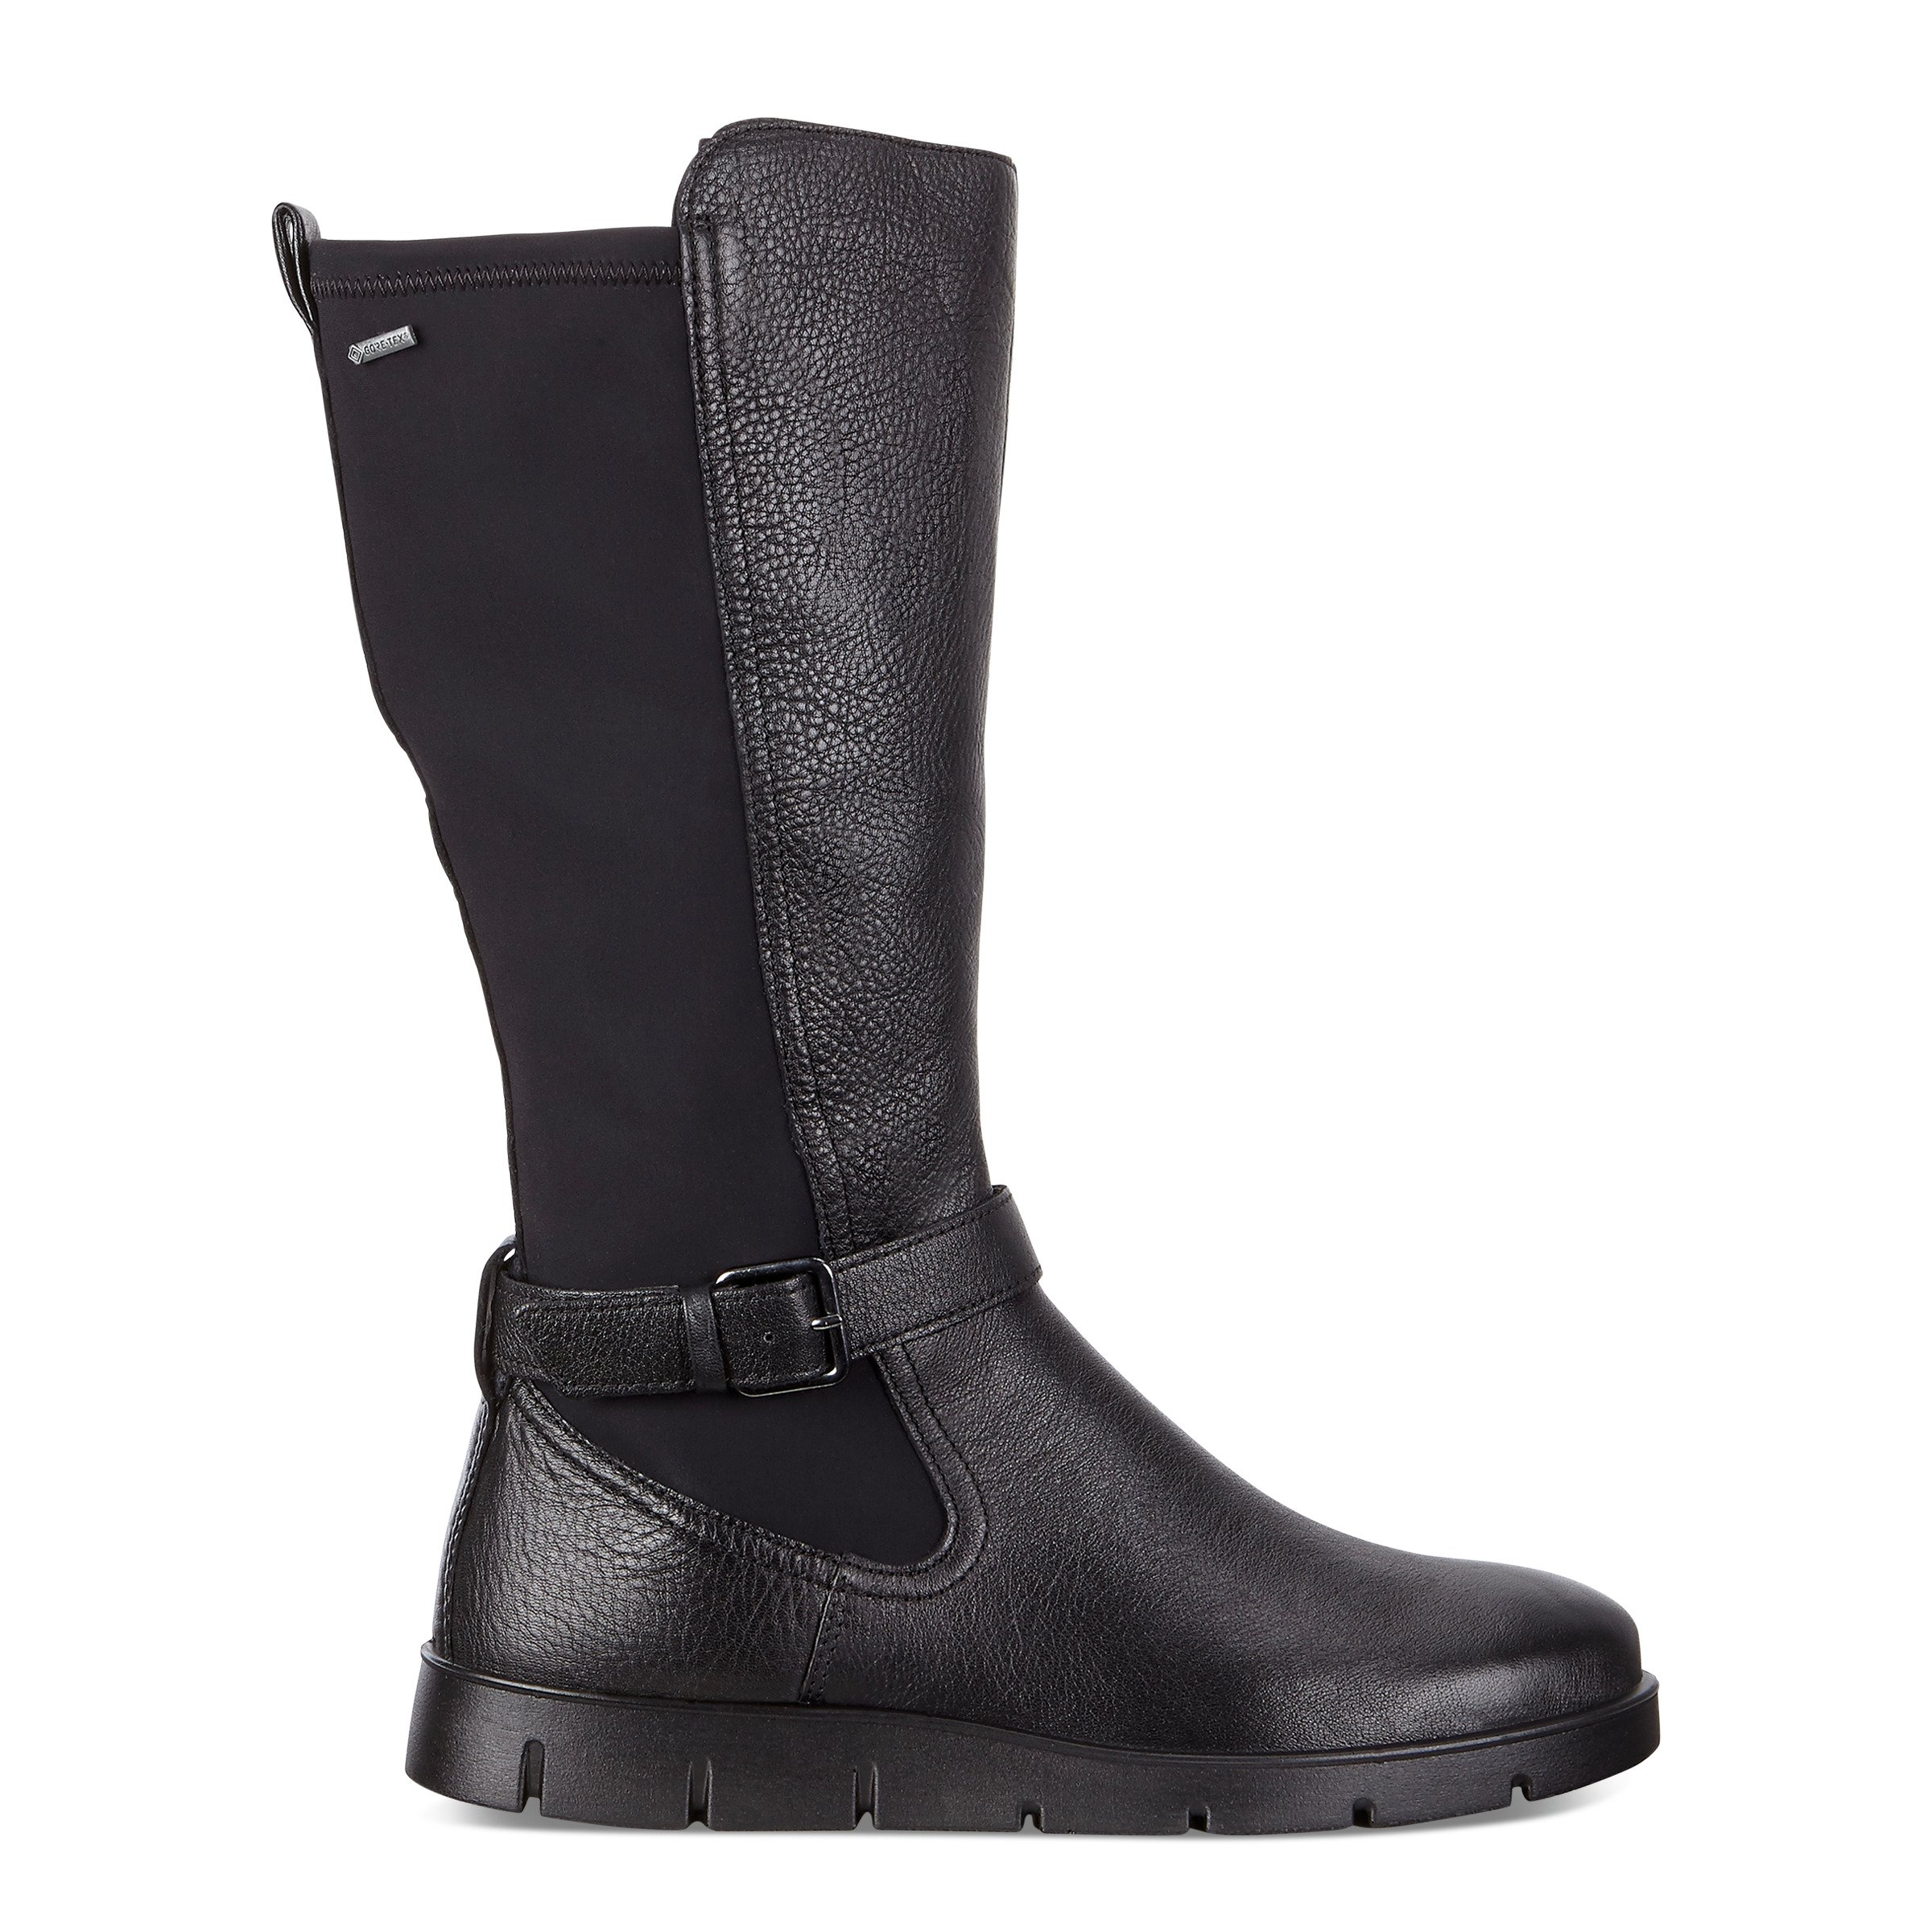 ECCO Bella Gtx Tall Boot Size 7-7.5 Black